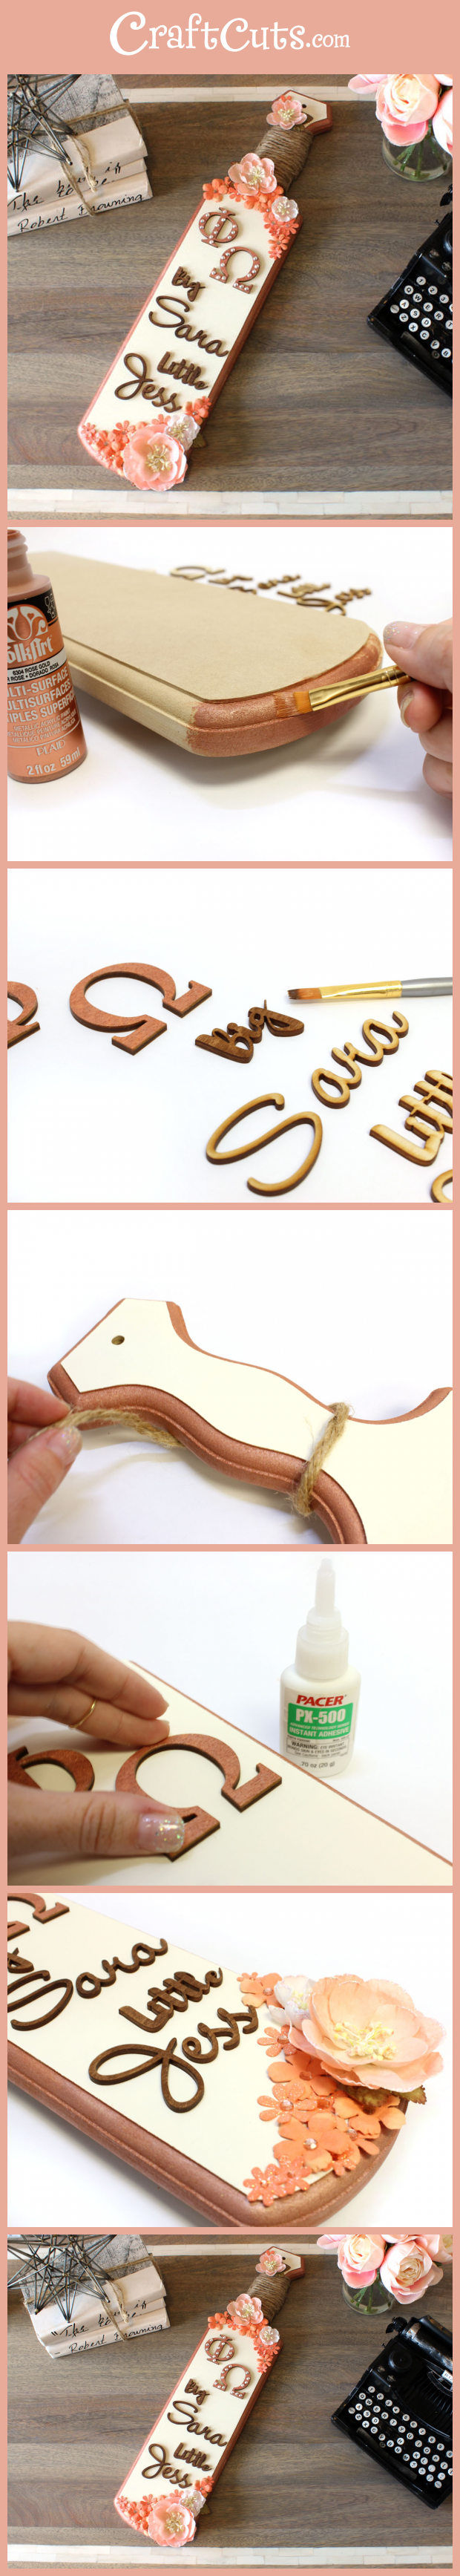 How To Decorate A Greek Sorority Paddle Craftcuts Com